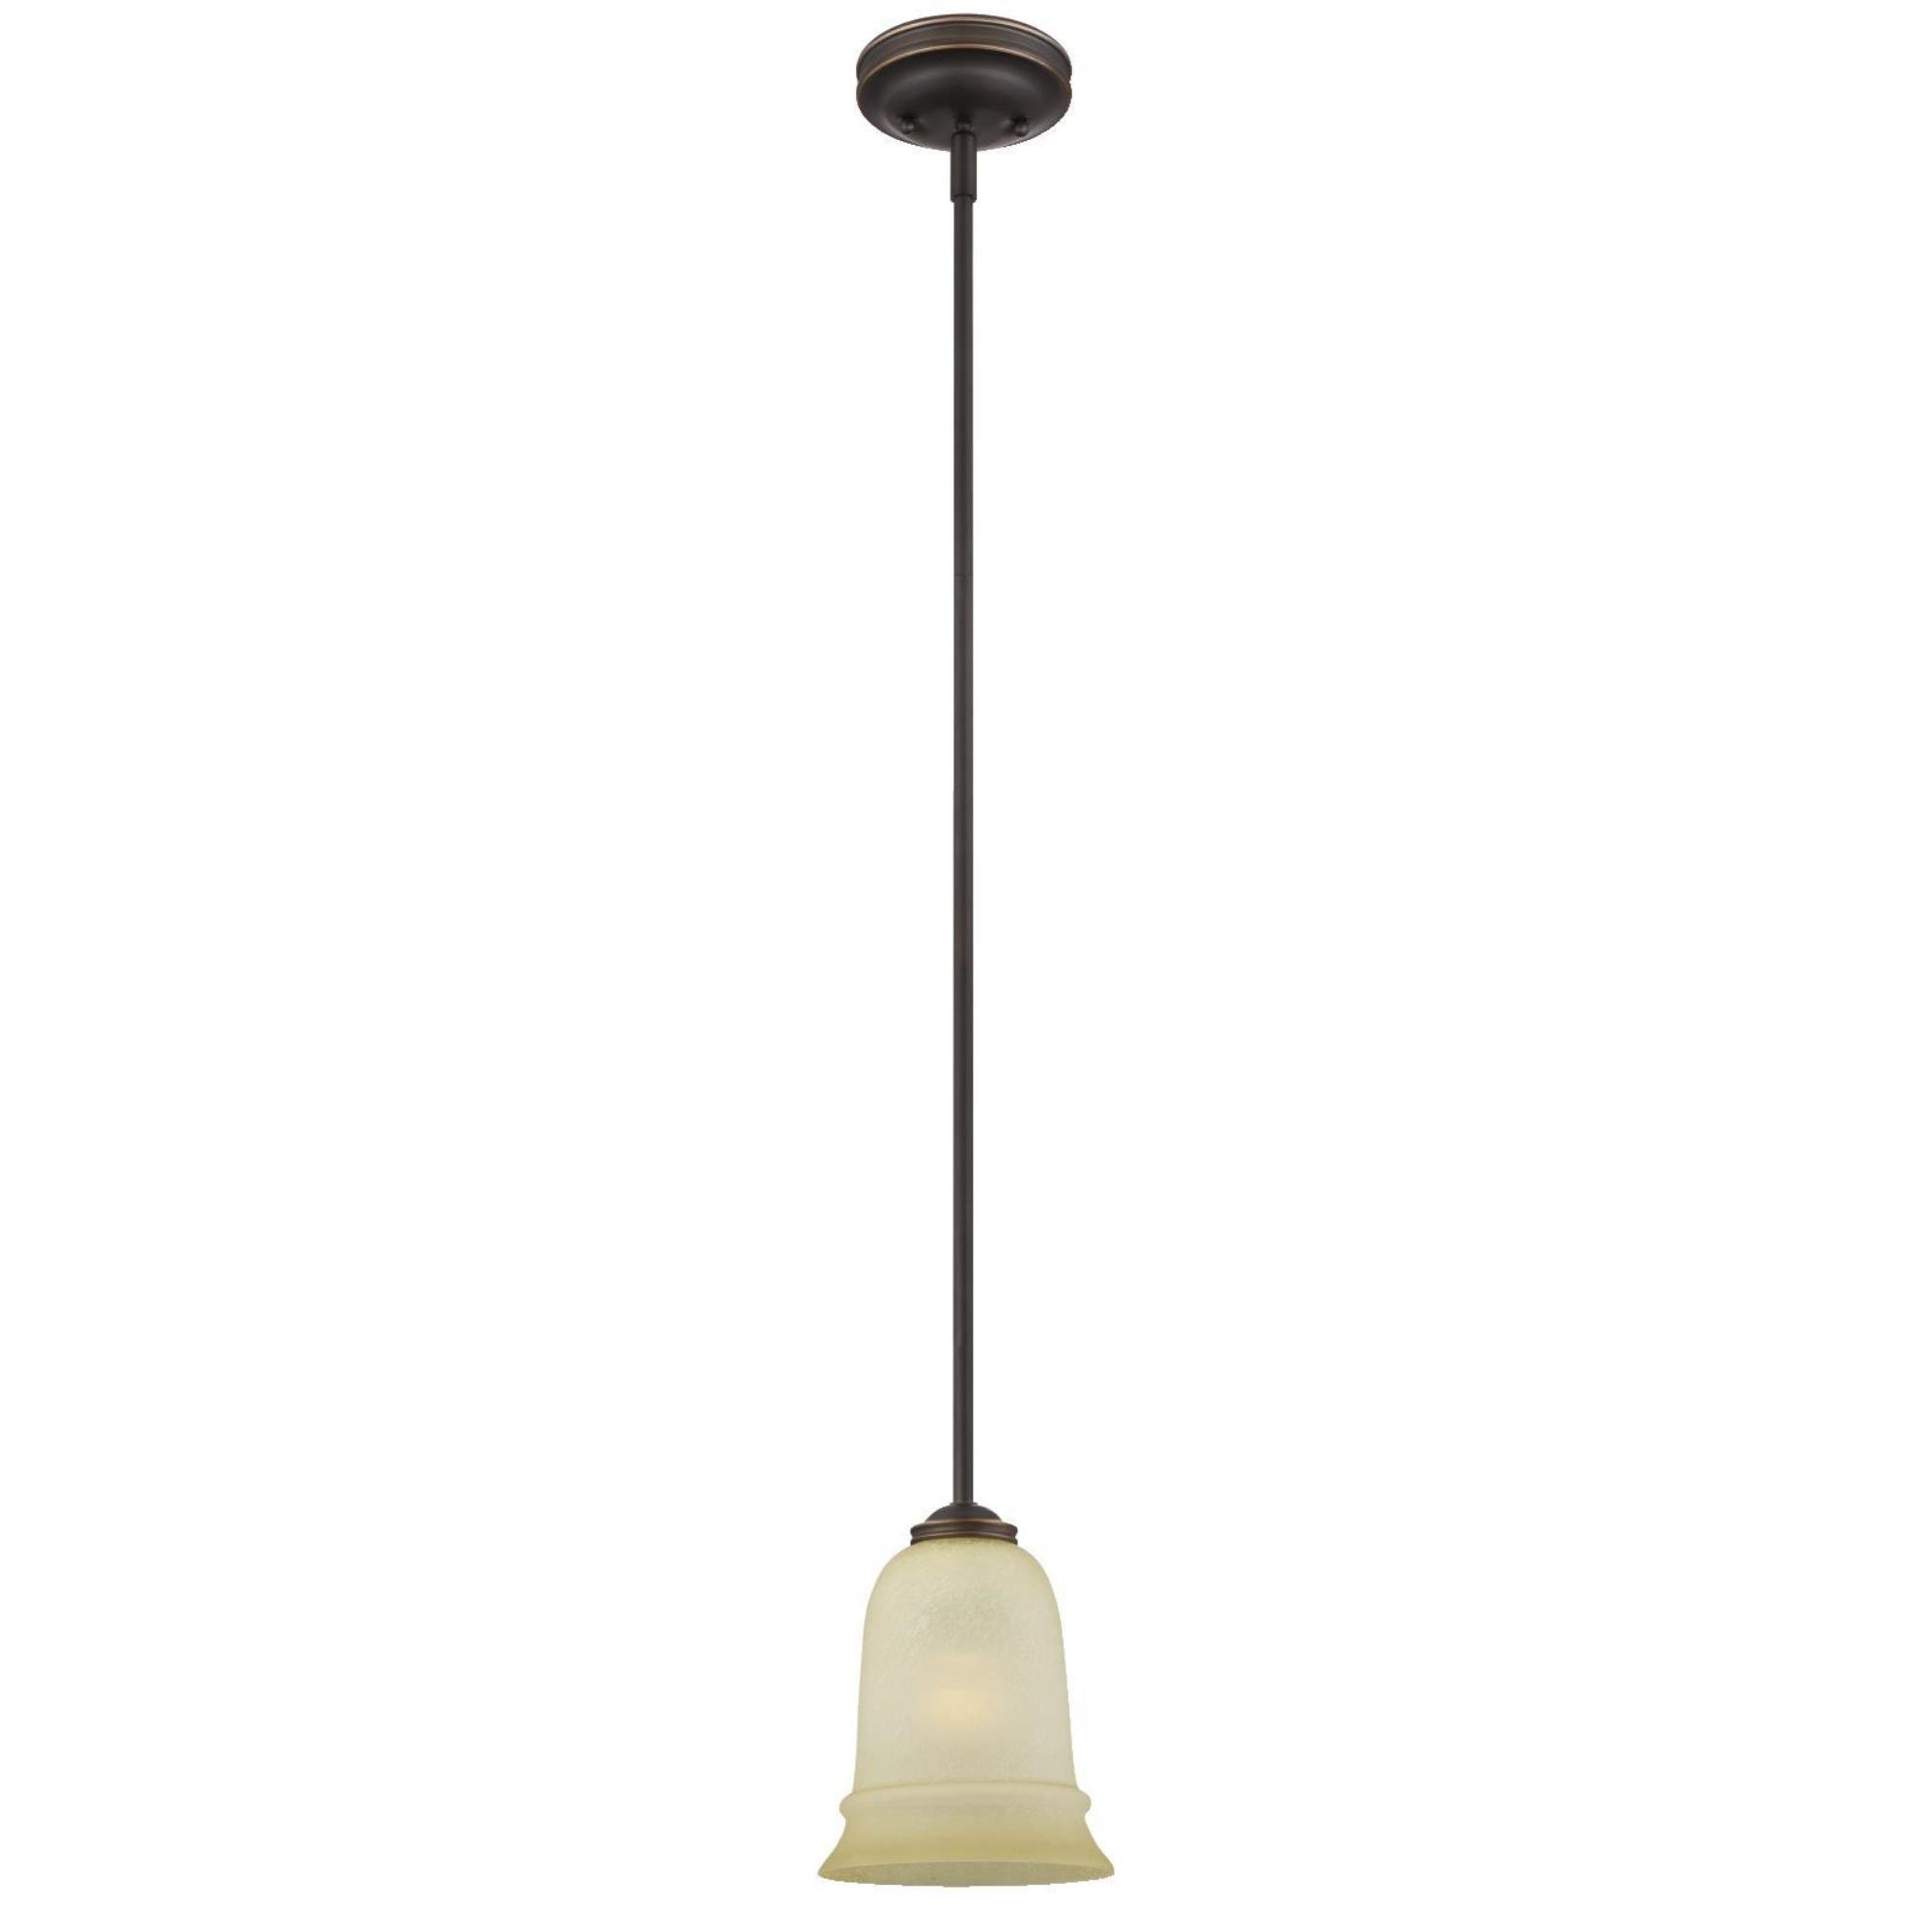 Westinghouse 6343100 Montrose One-Light Adjustable Indoor Mini Pendant, Oil Rubbed Bronze Finish with Highlights and Mocha Scavo Glass